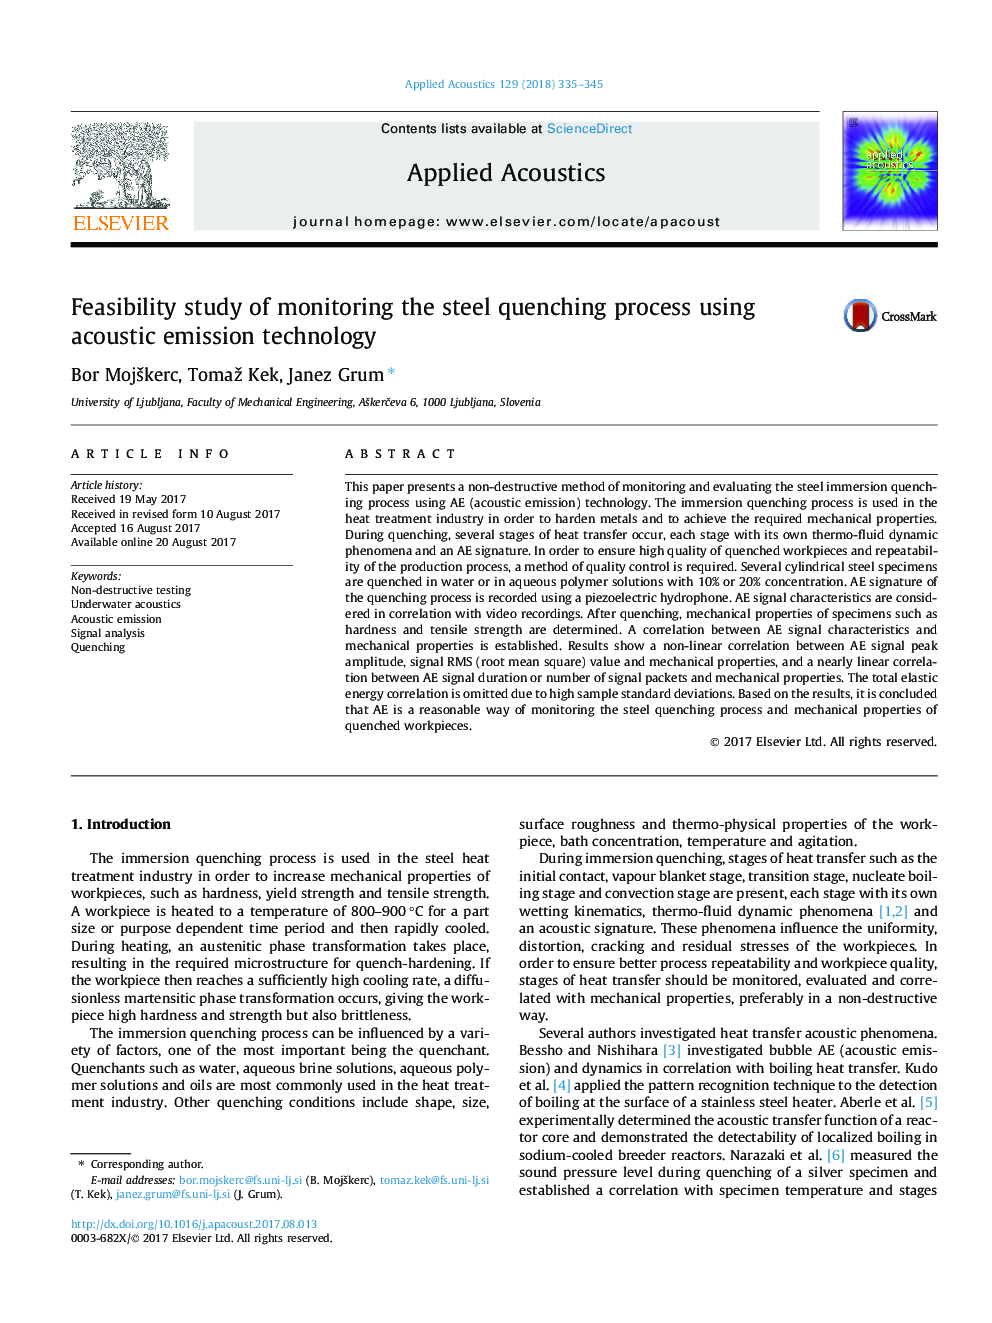 Feasibility study of monitoring the steel quenching process using acoustic emission technology